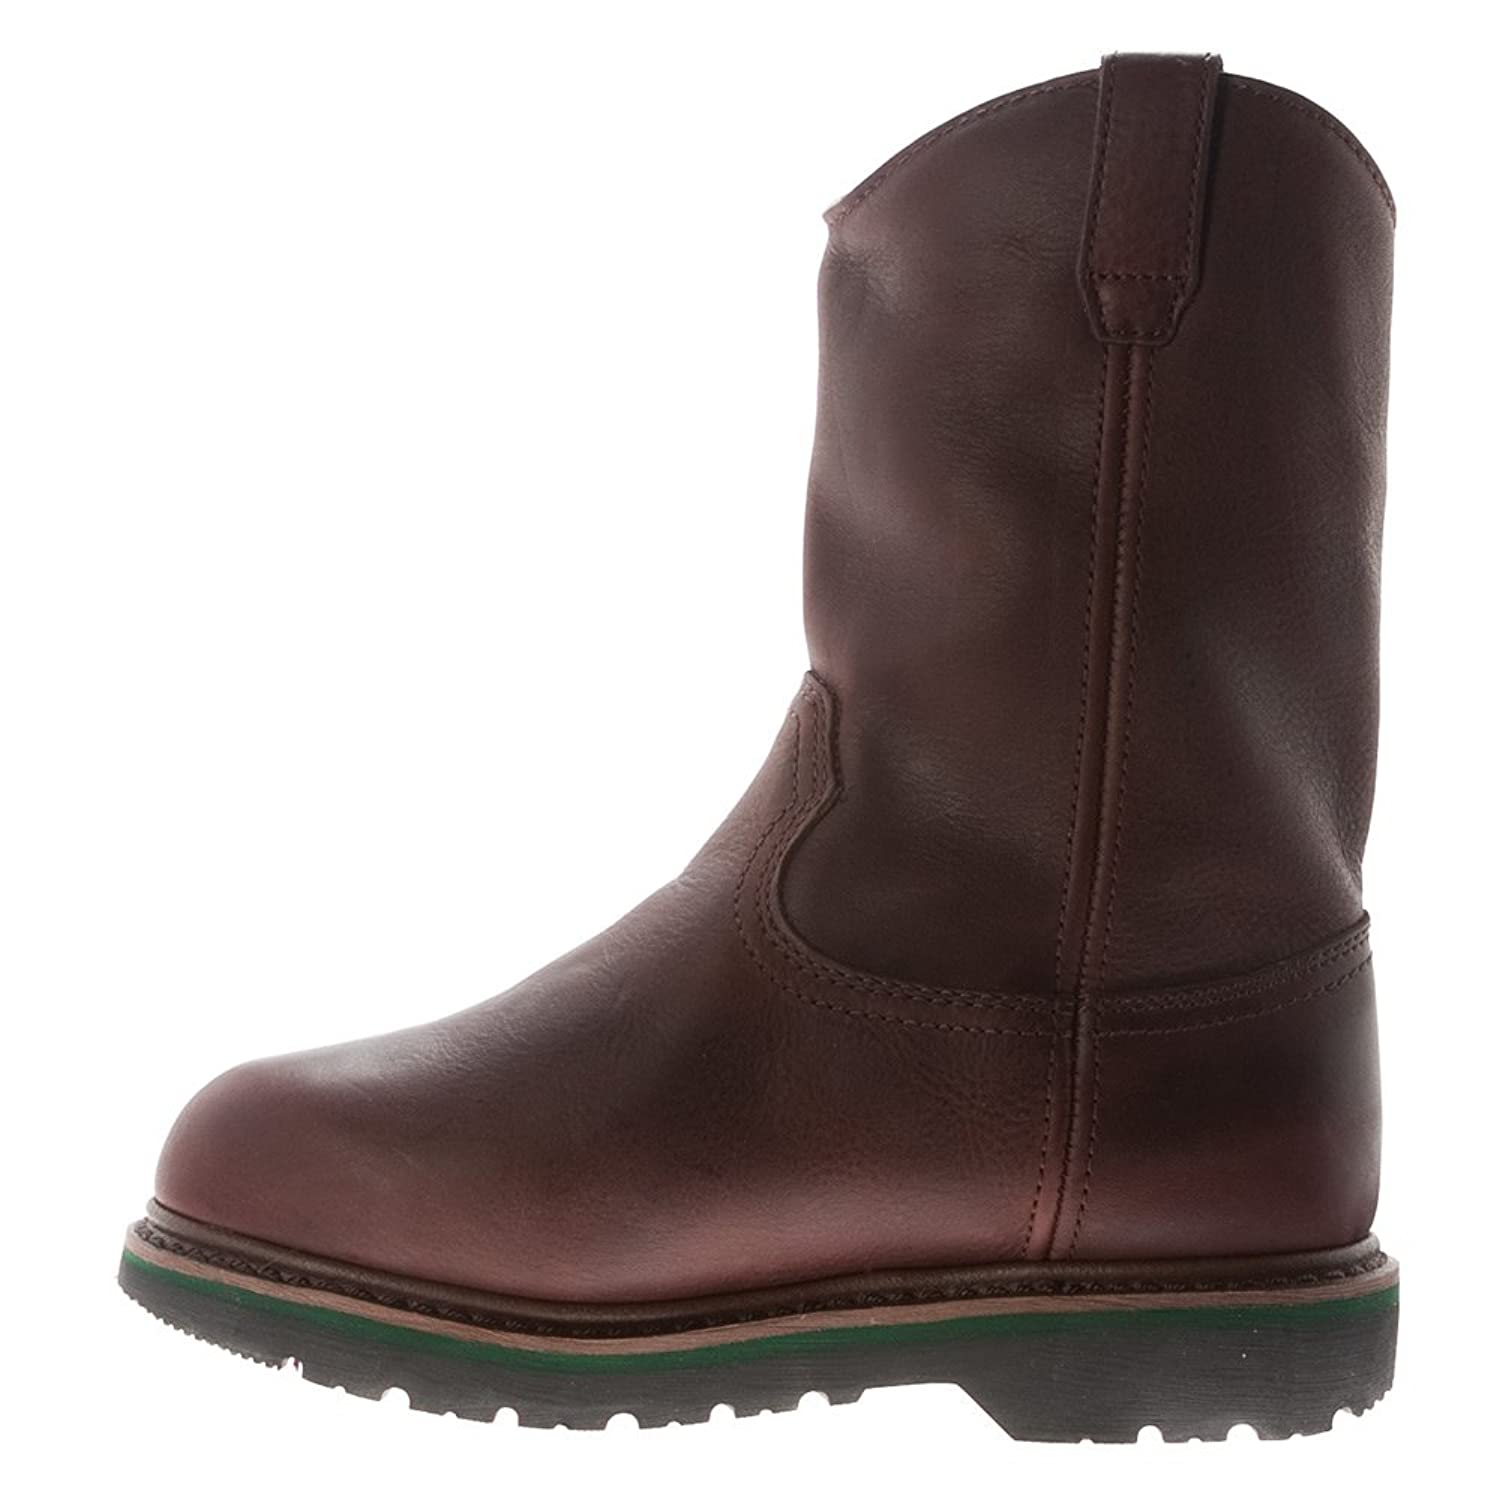 52ab63fc5e3 Amazon.com | John Deere Steel Toe Met Guard Men's Leather Boots ...